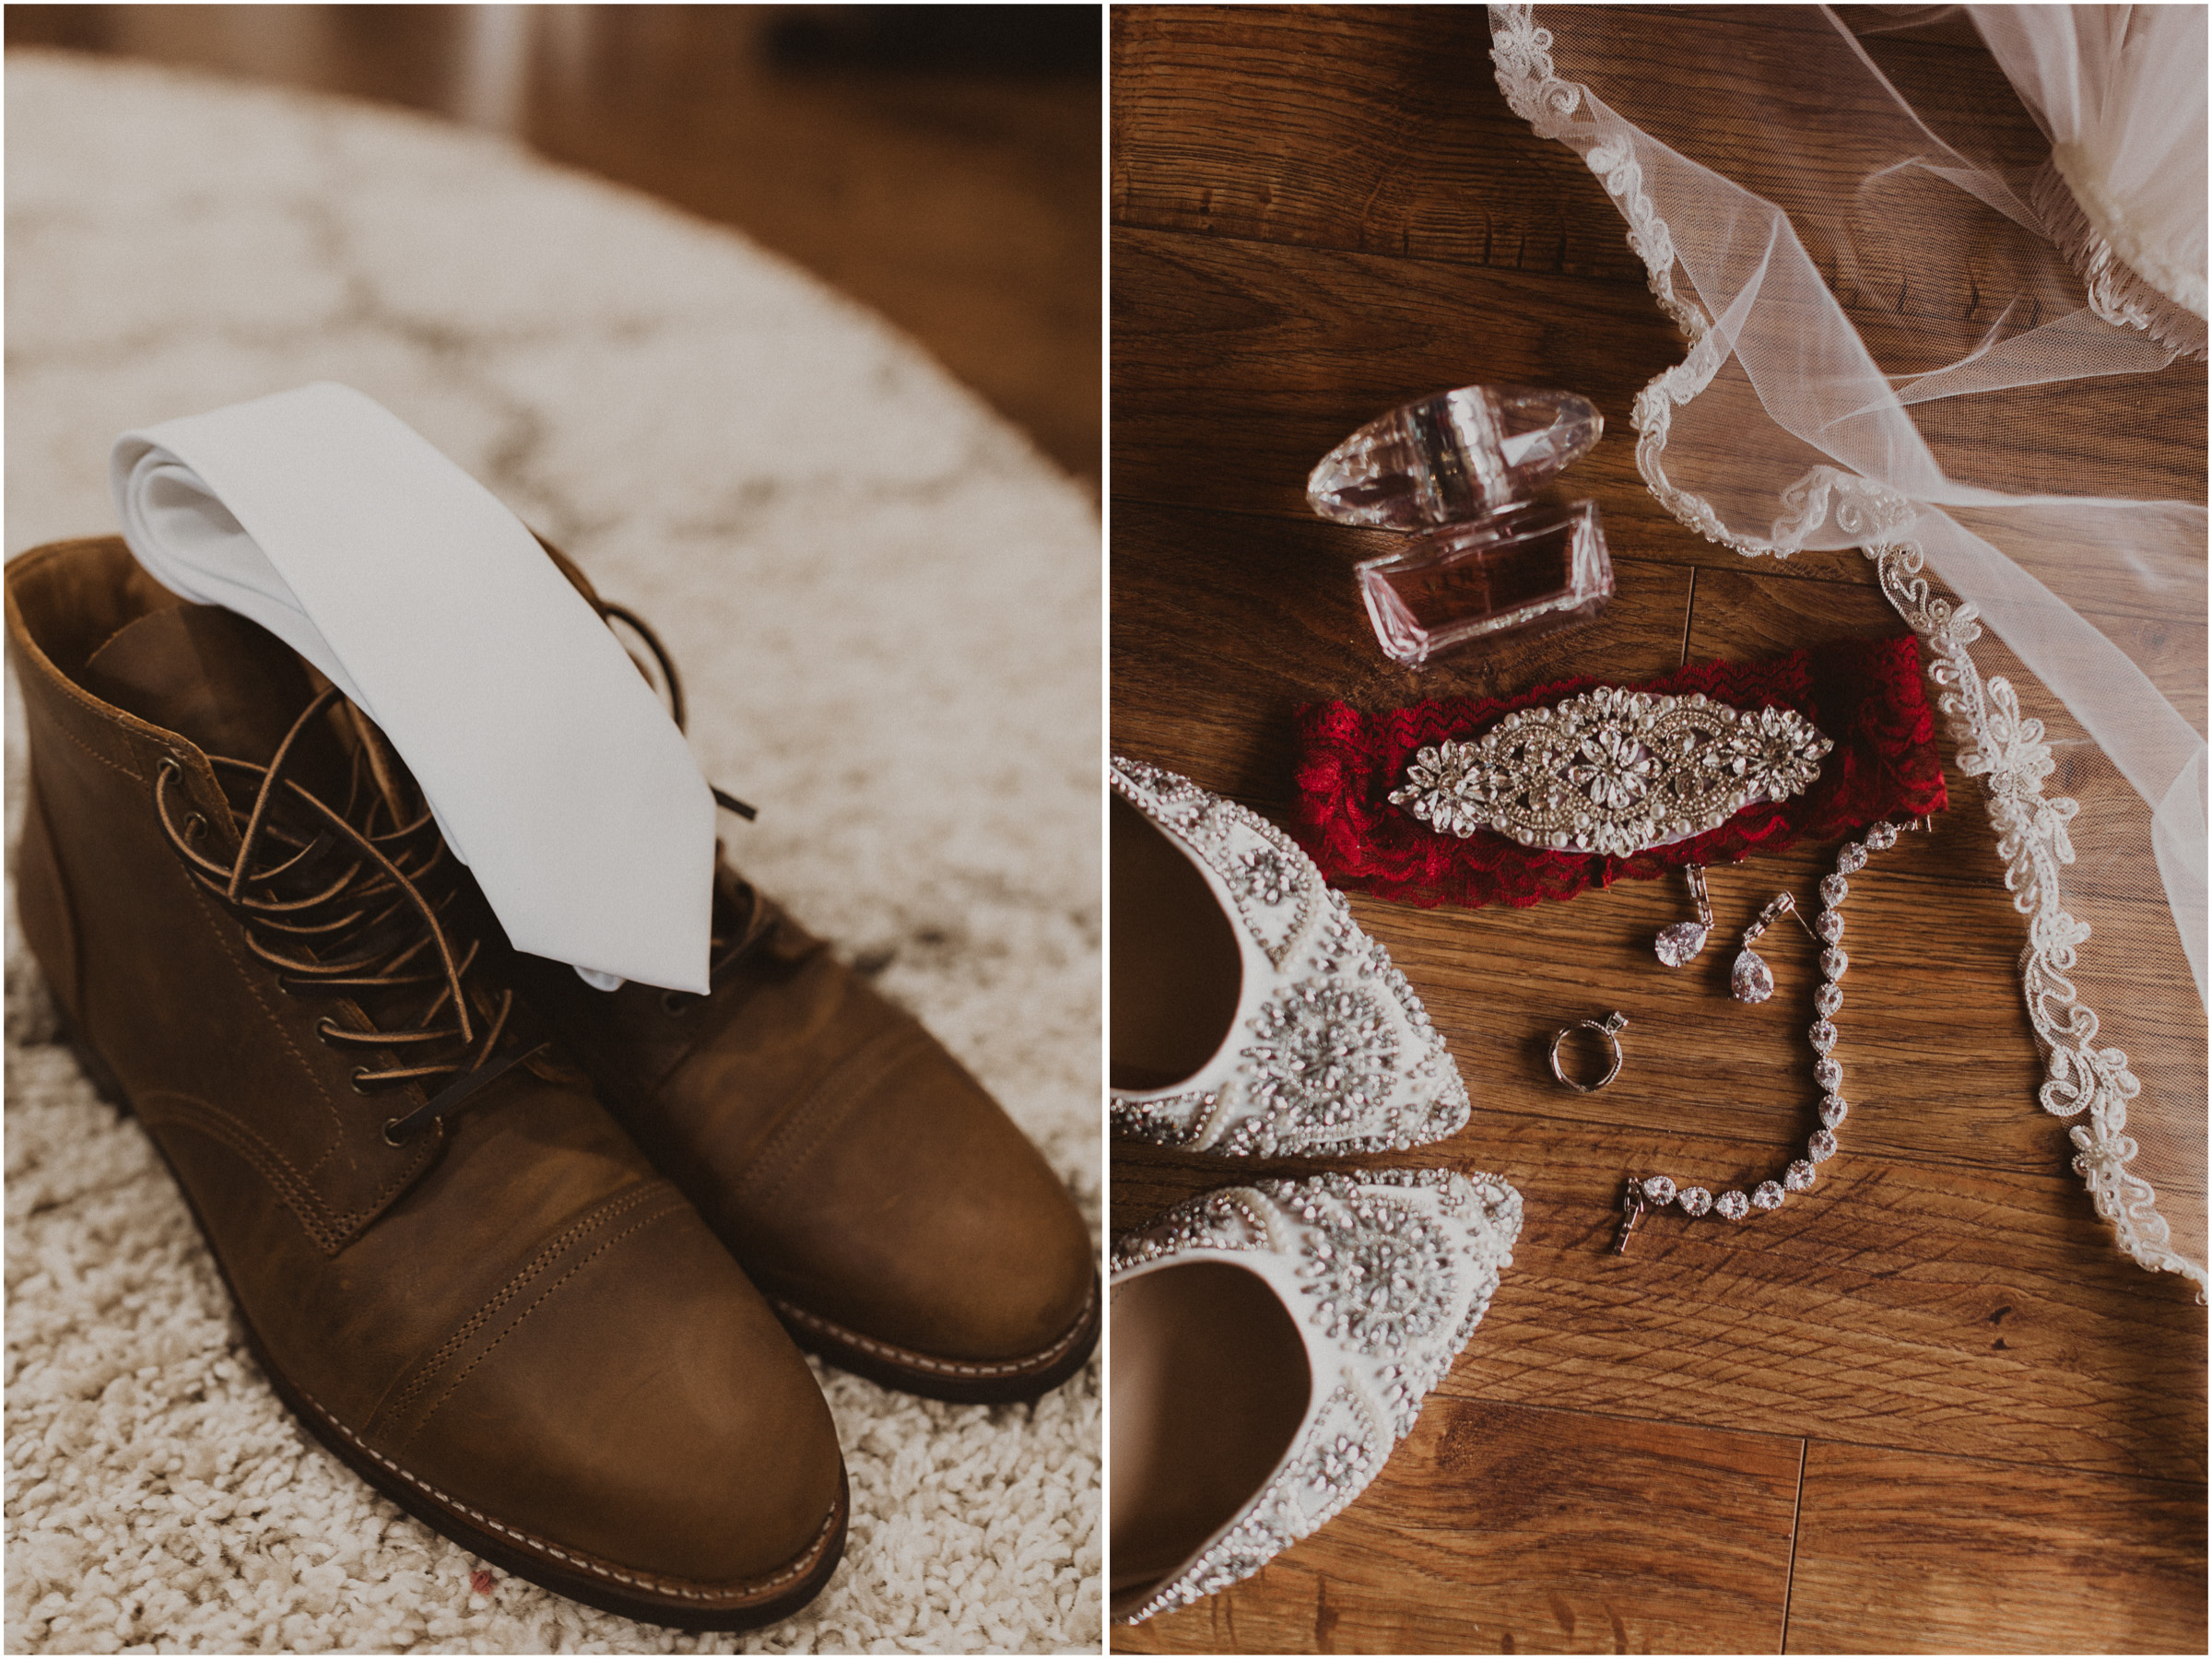 alyssa barletter photography winter odin great bend claflin kansas wedding photographer-2.jpg